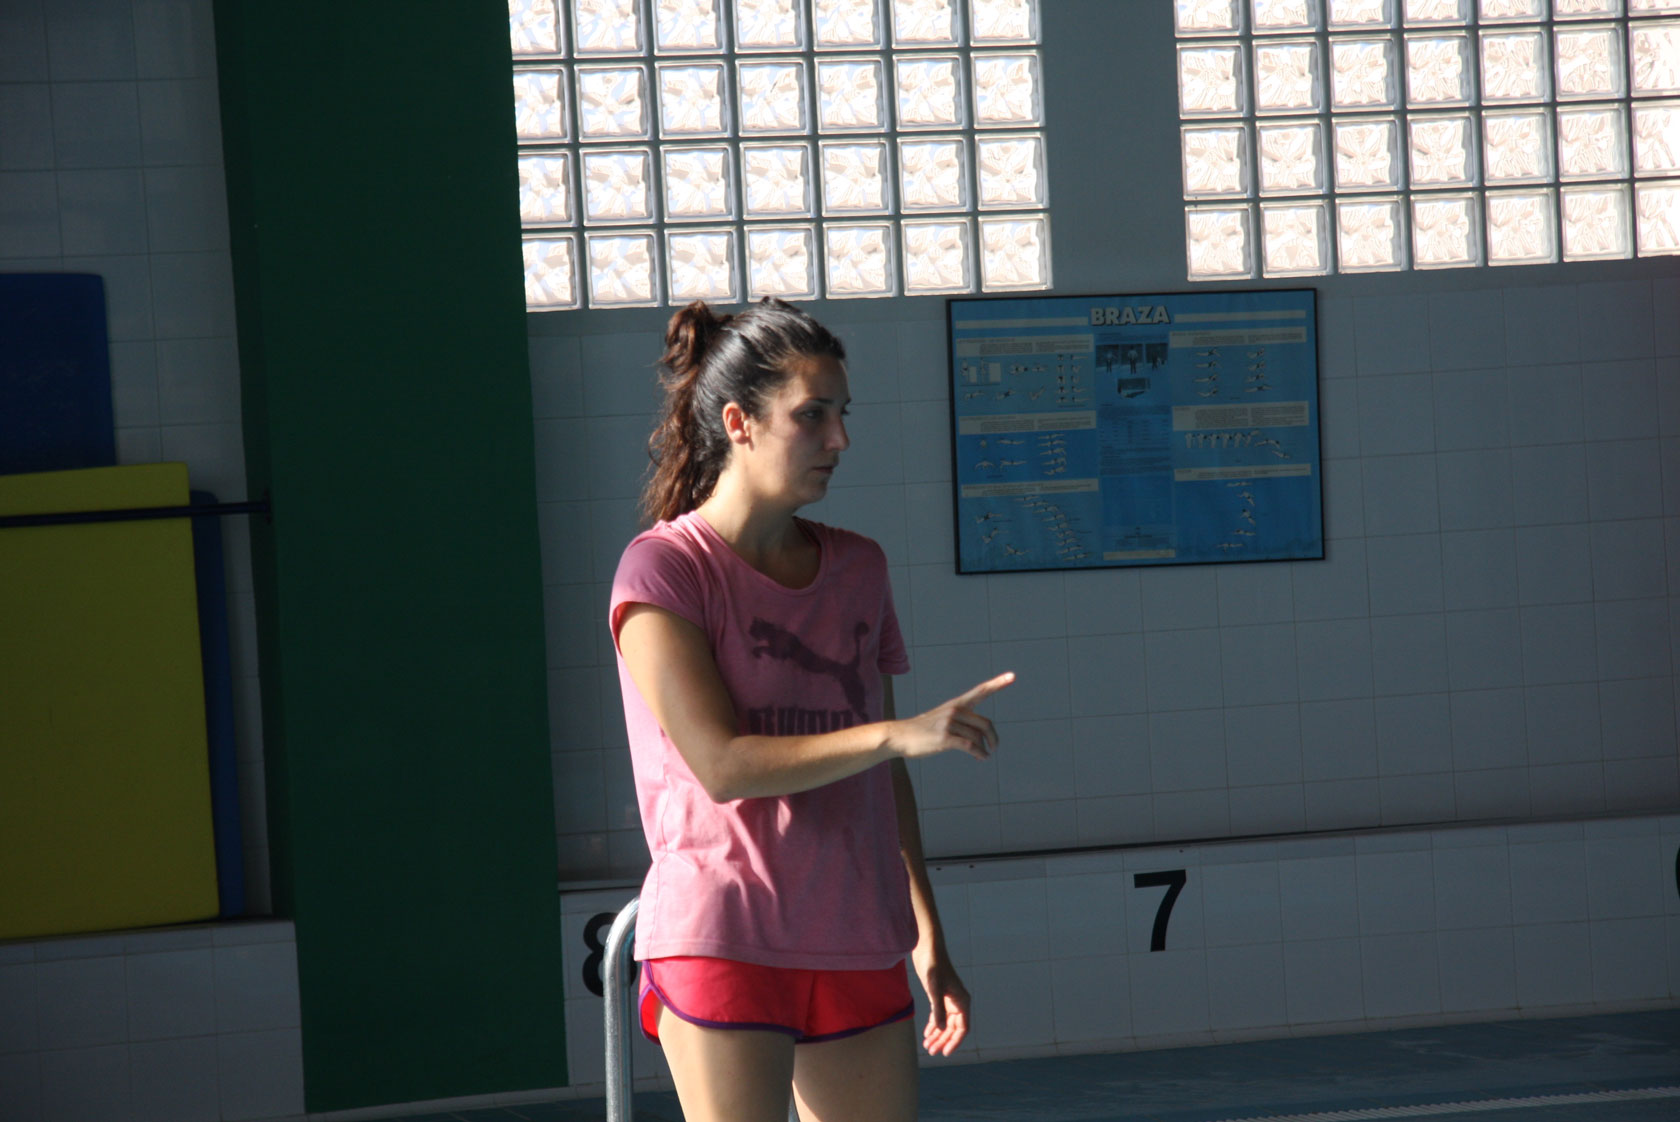 Olympic medallist Andrea Fuentes coaching